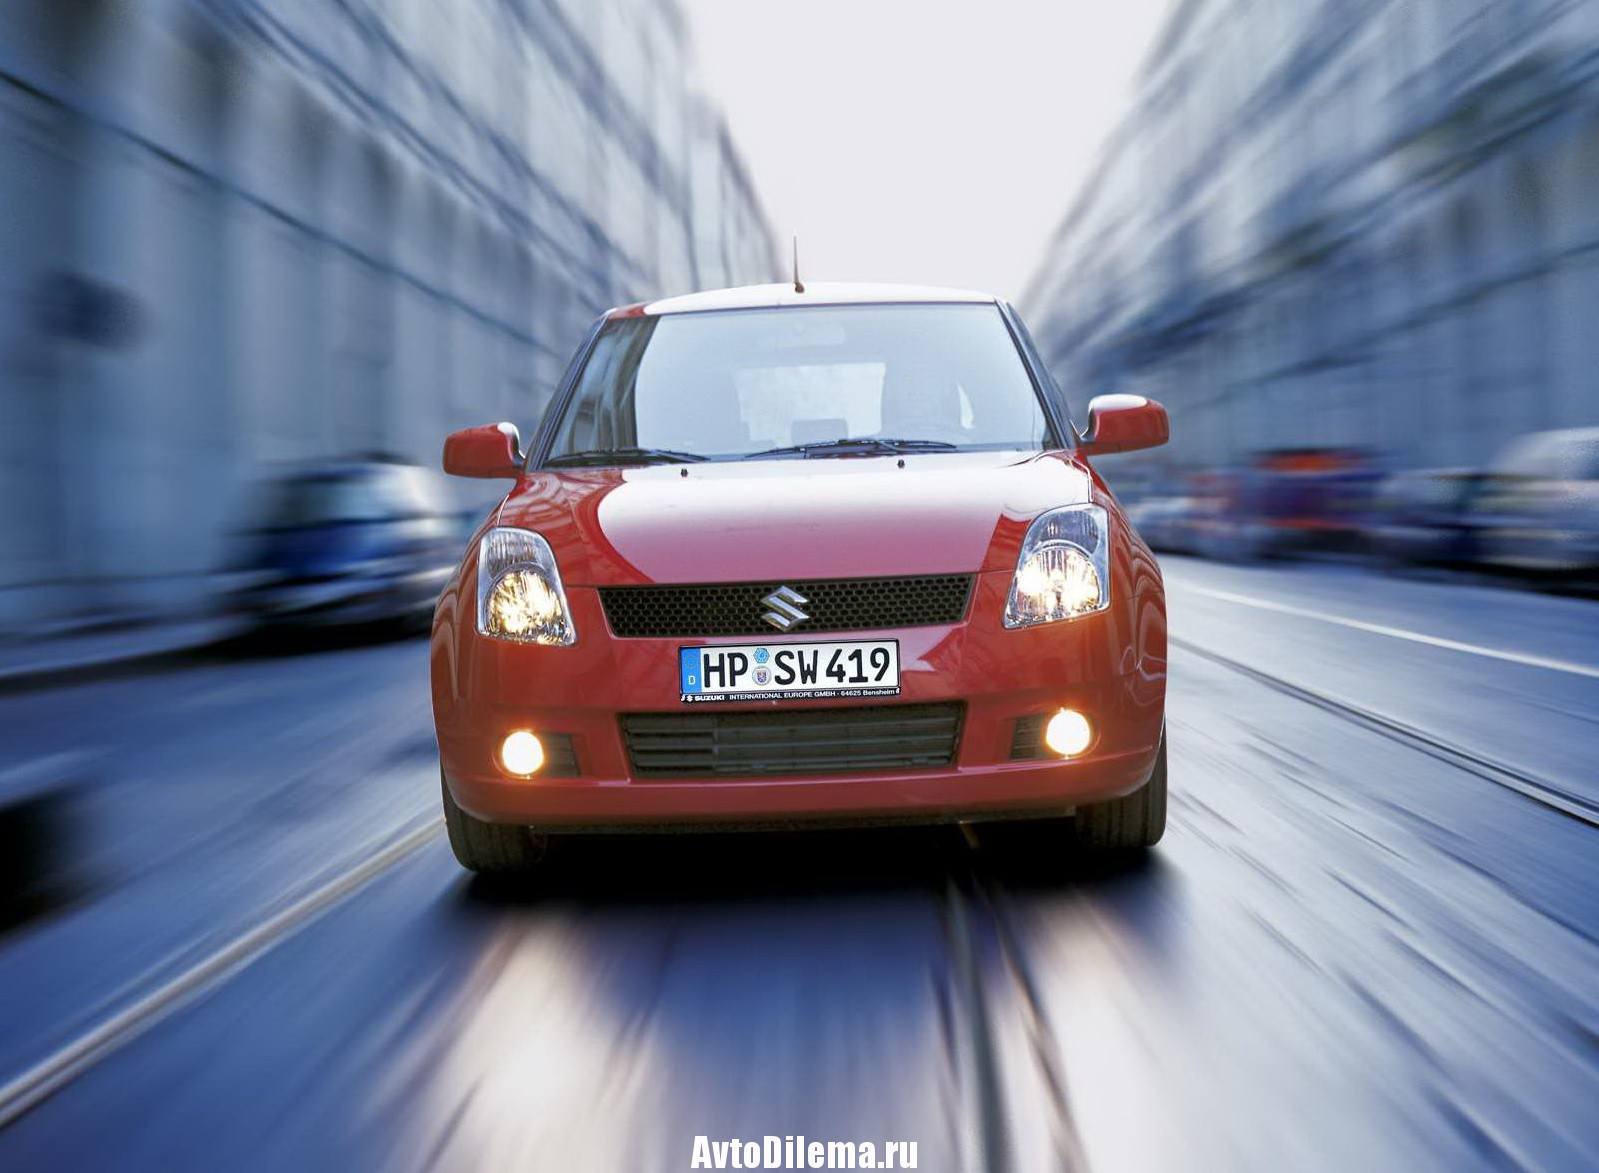 Ищем болячки у Suzuki Swift III